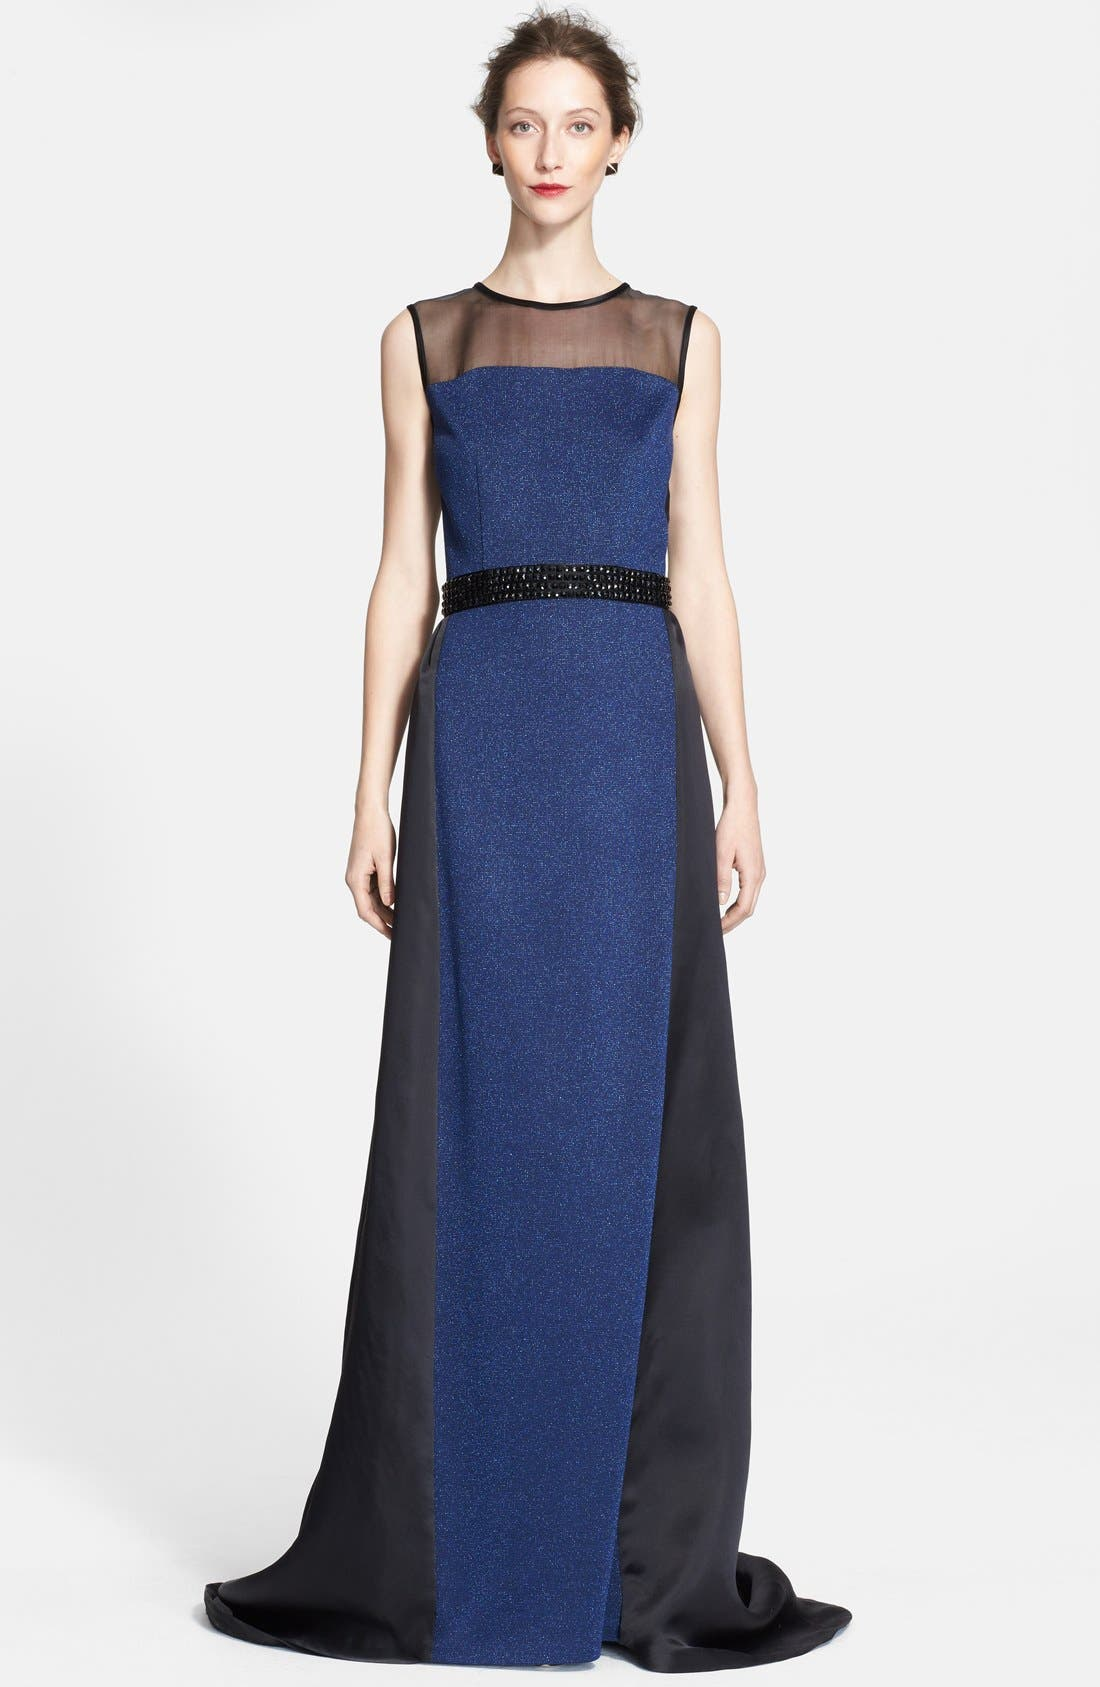 Main Image - St. John Collection Embellished Waist Shimmer Milano Knit Gown